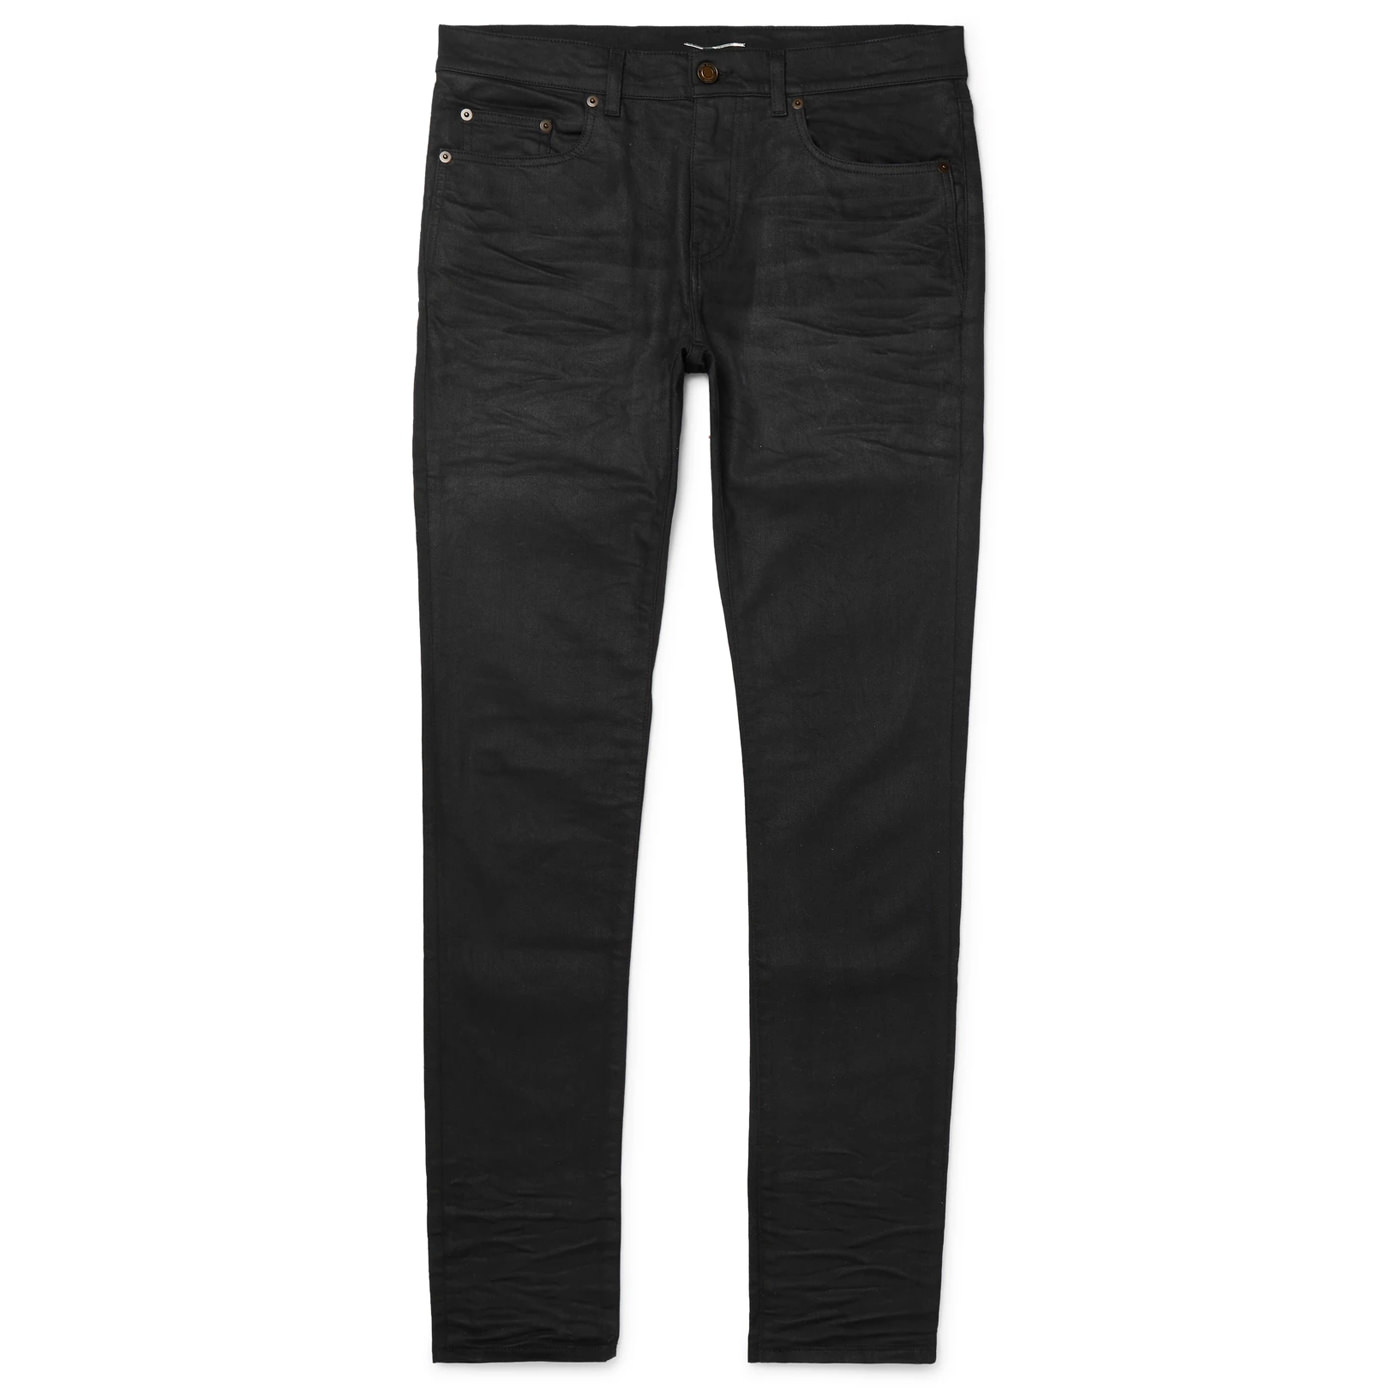 Style Mr Porter Jean Noir Denim Saint Laurent